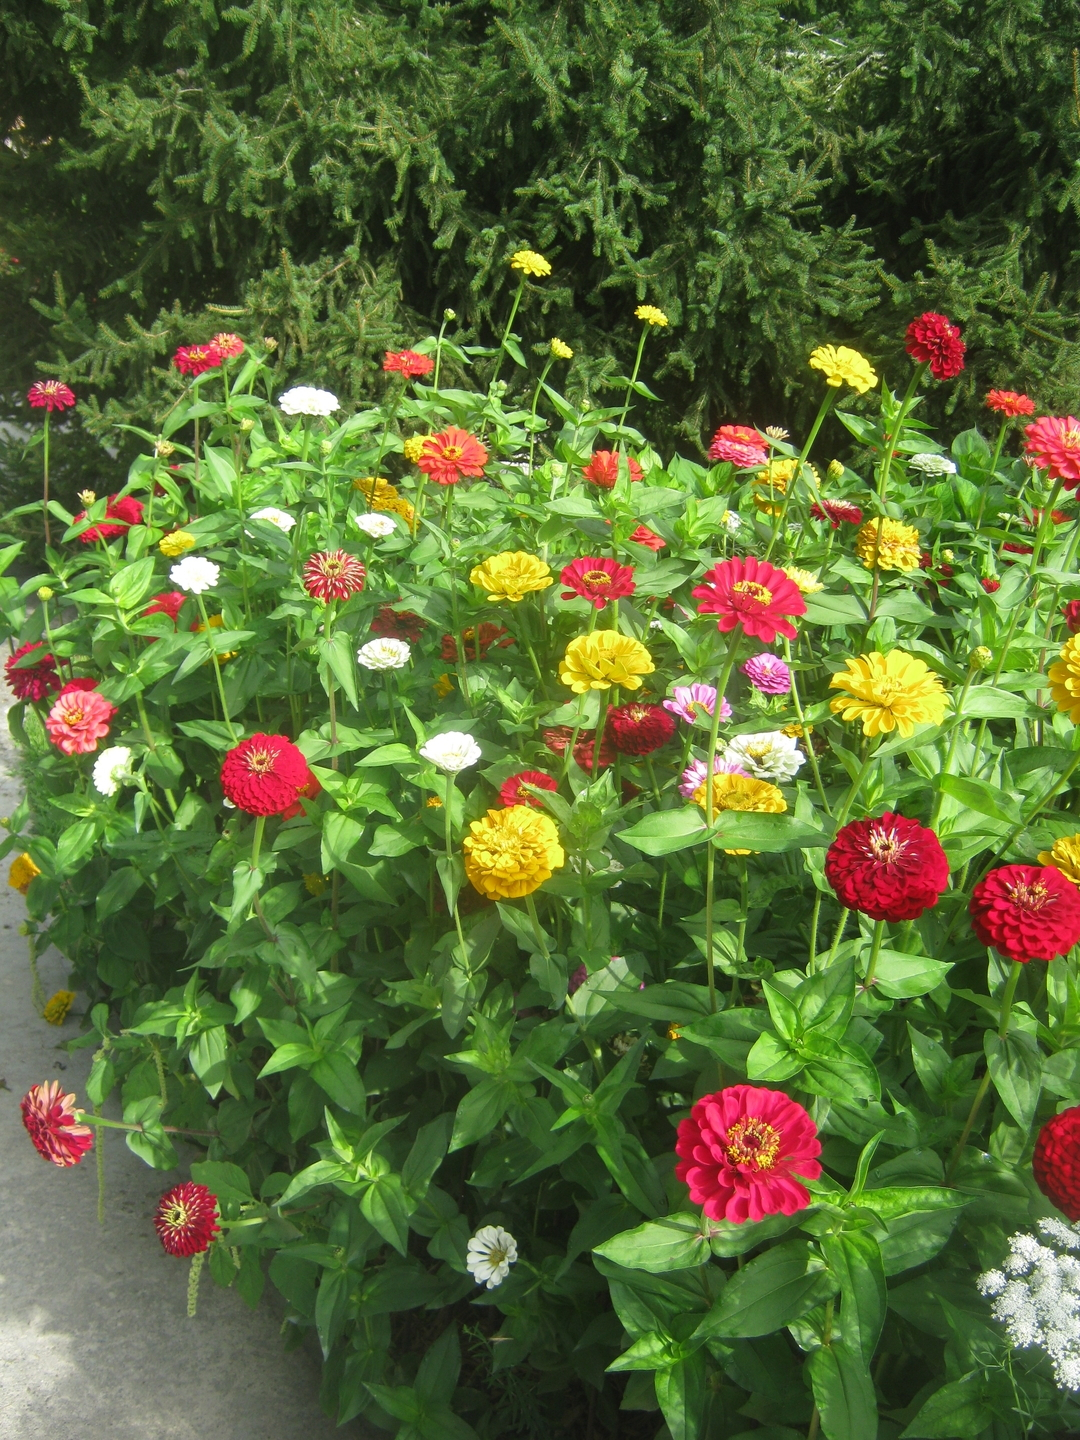 'Park's Picks' big-flowered zinnias at Becky Savitz's garden in Cashiers, NC. Photo by Steve Bender.